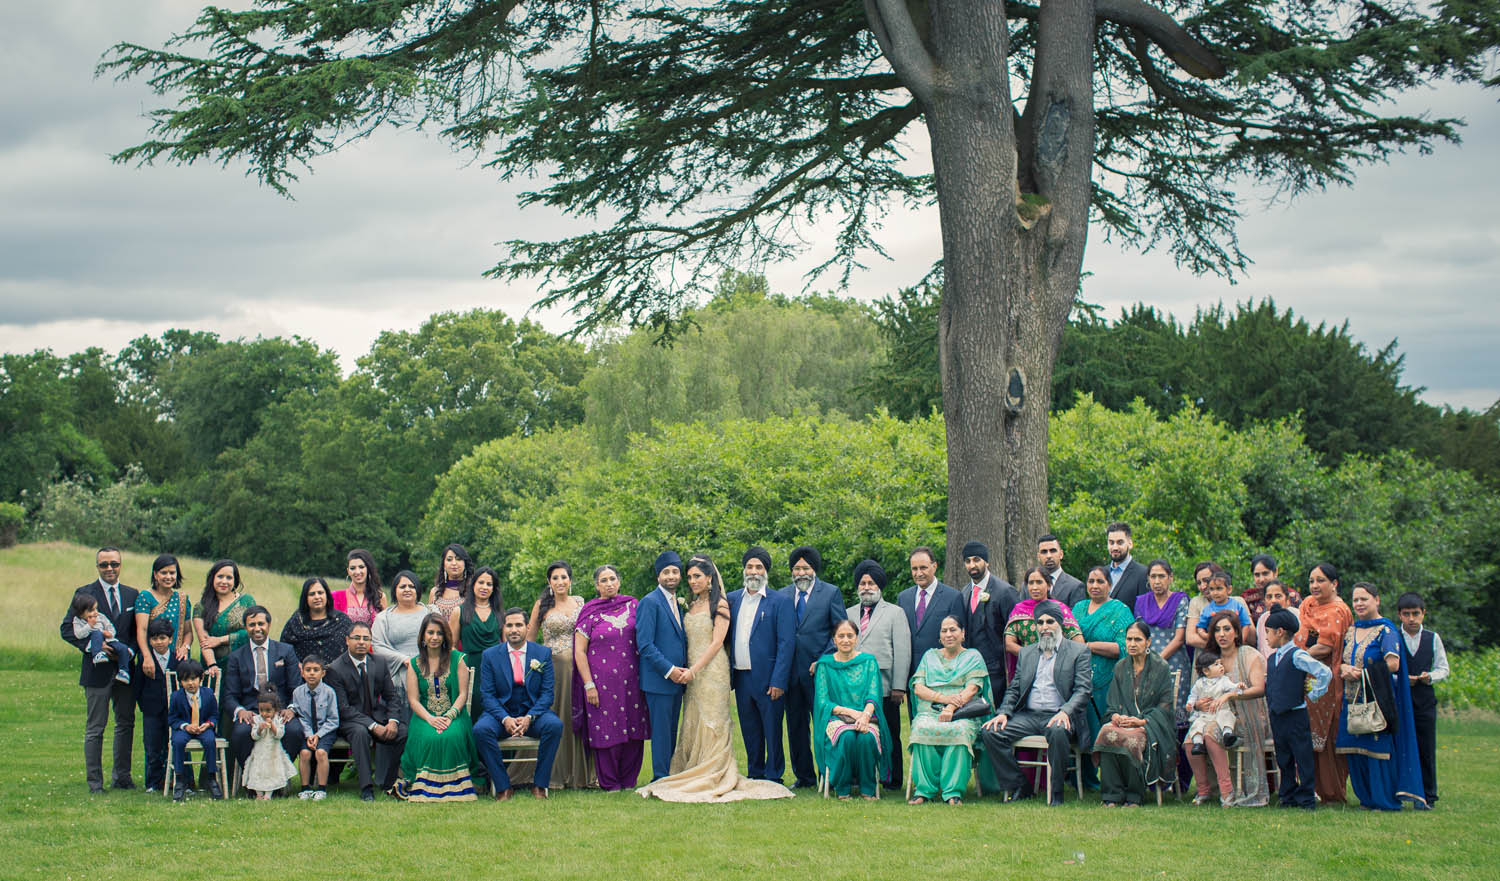 wedding_in_london_102.jpg